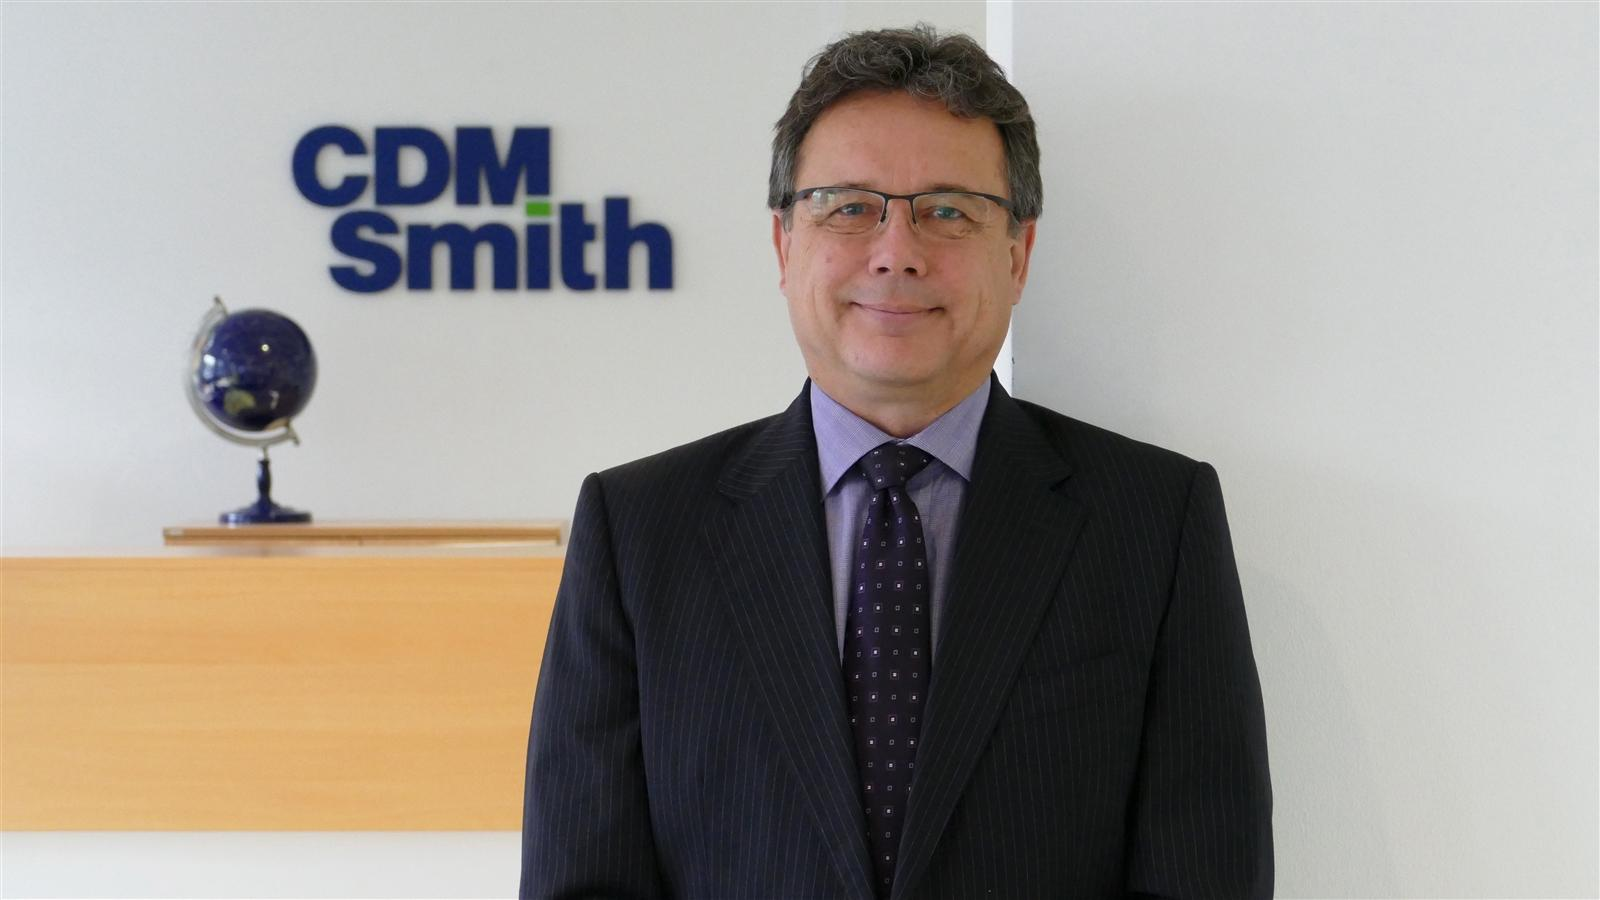 Uwe Rasch CDM Smith